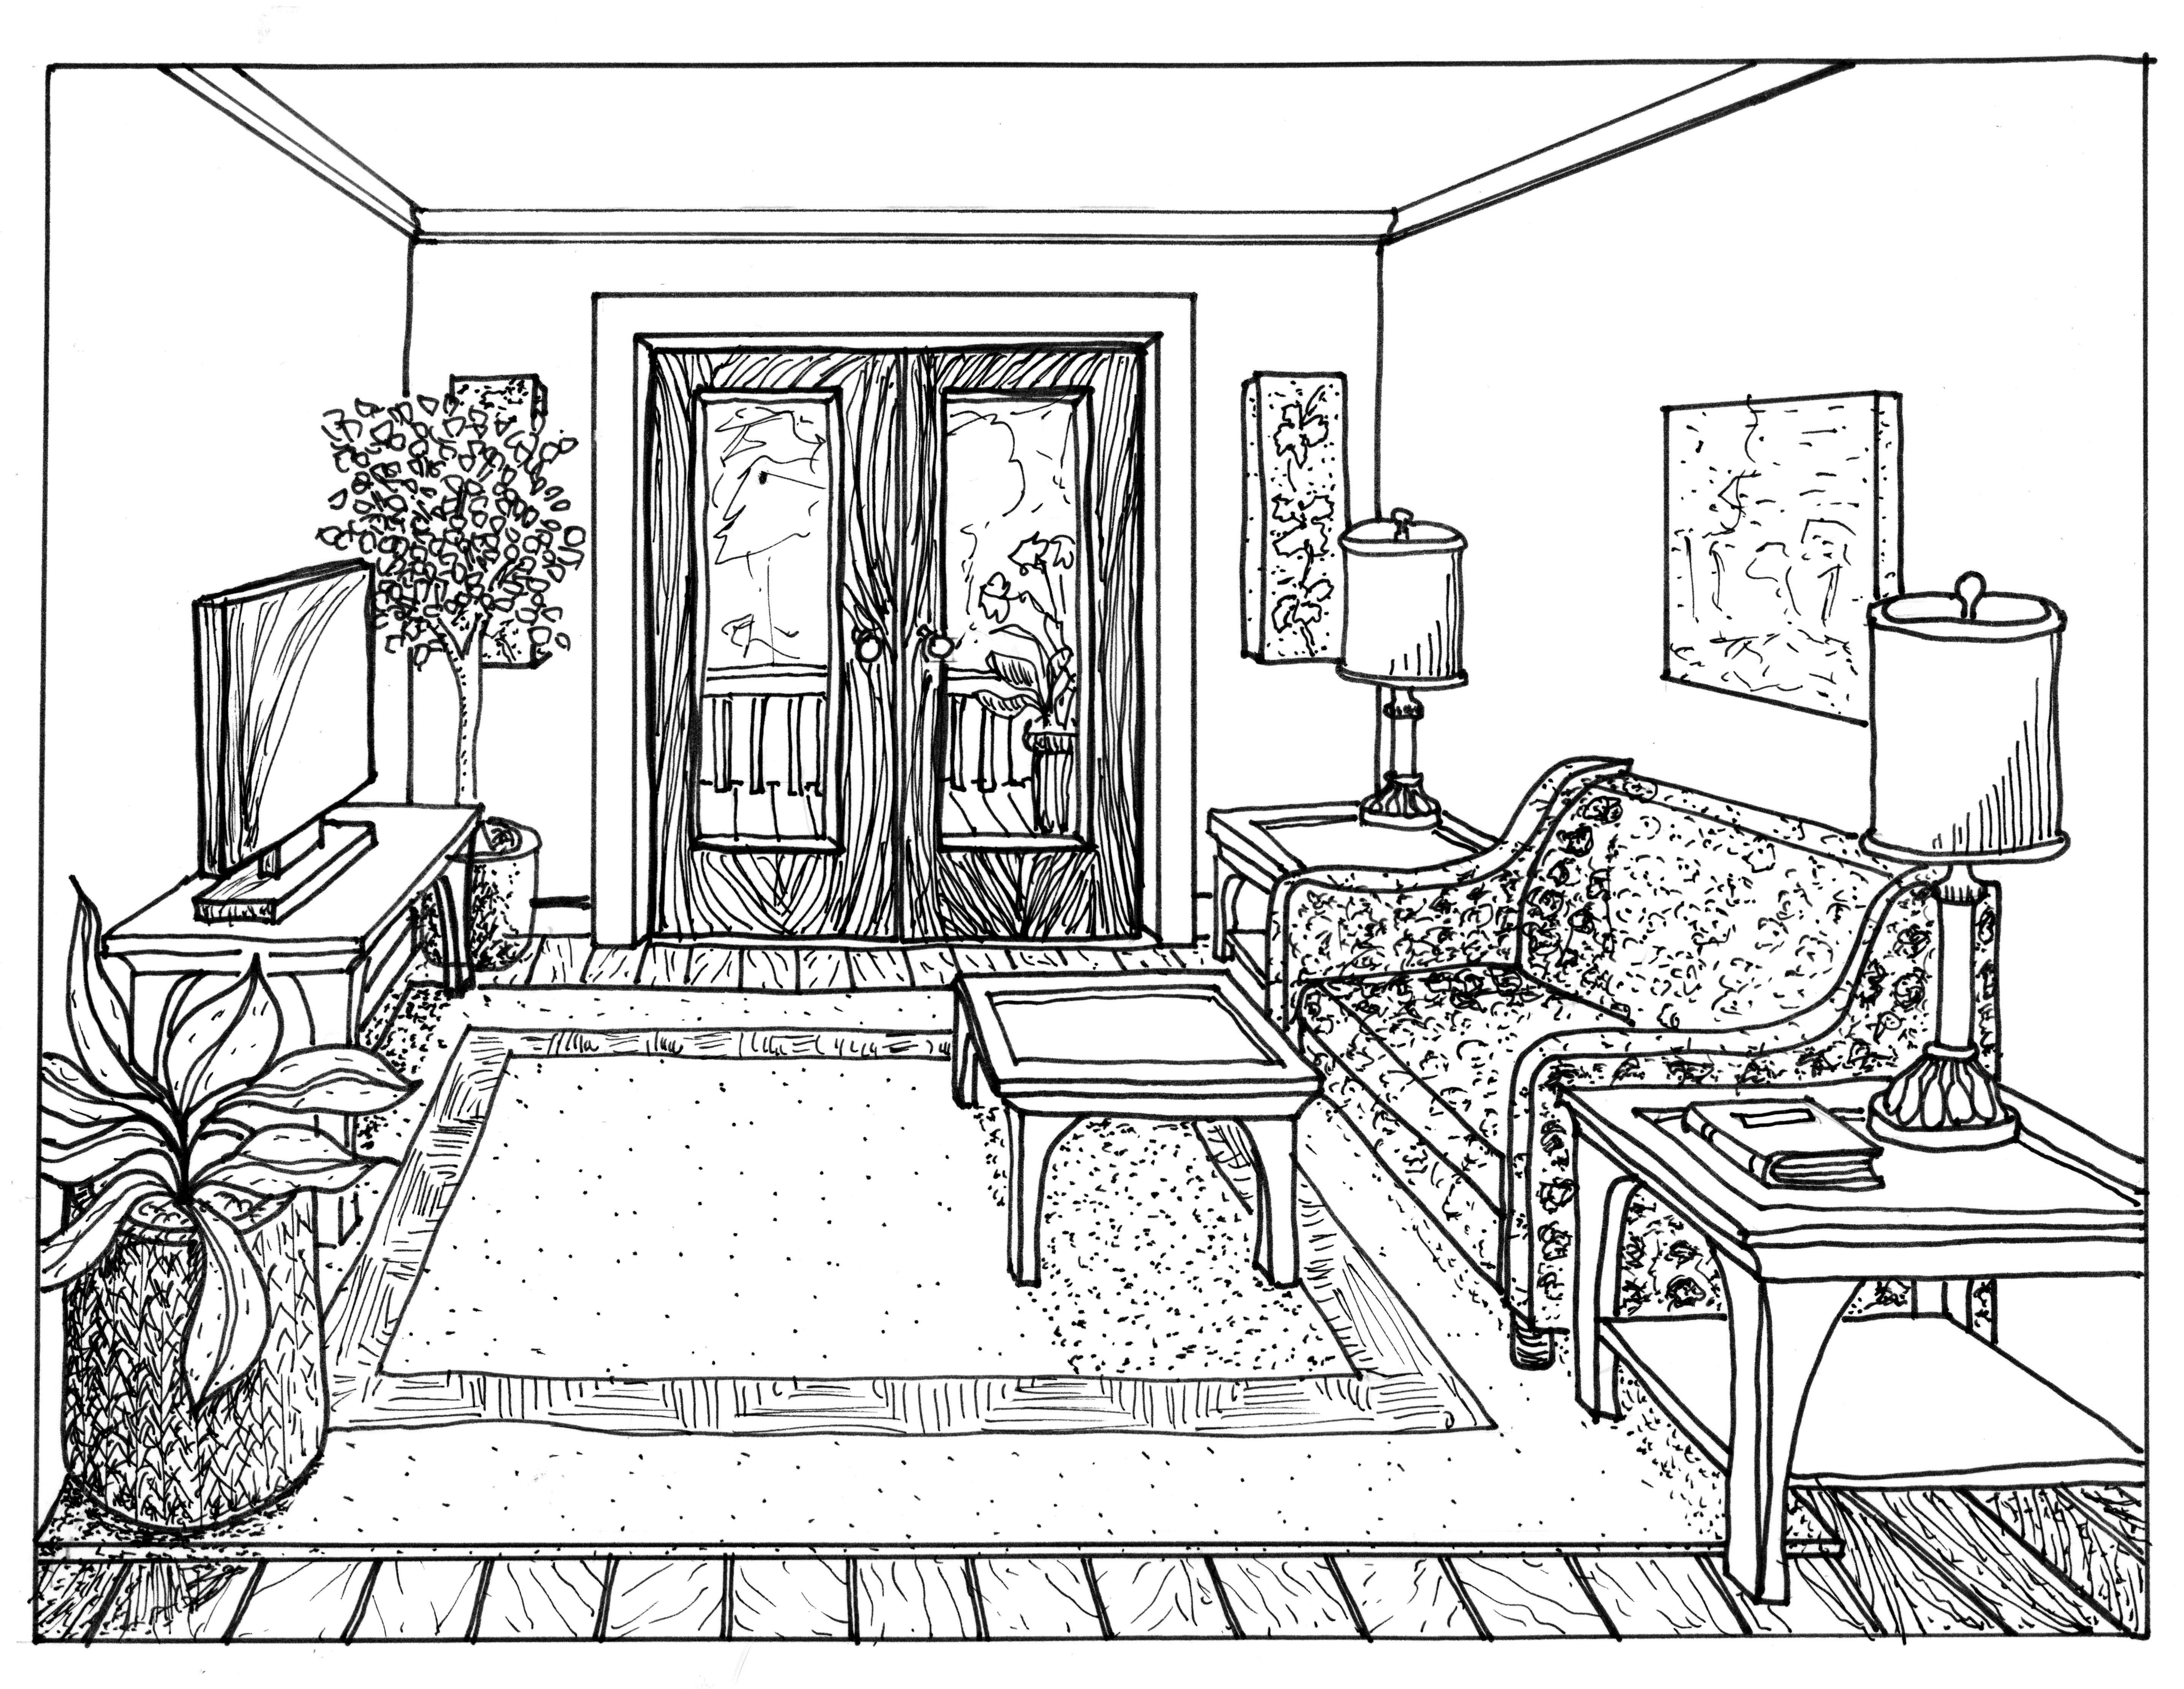 Floor Plan And One Point Perspective Line Drawing